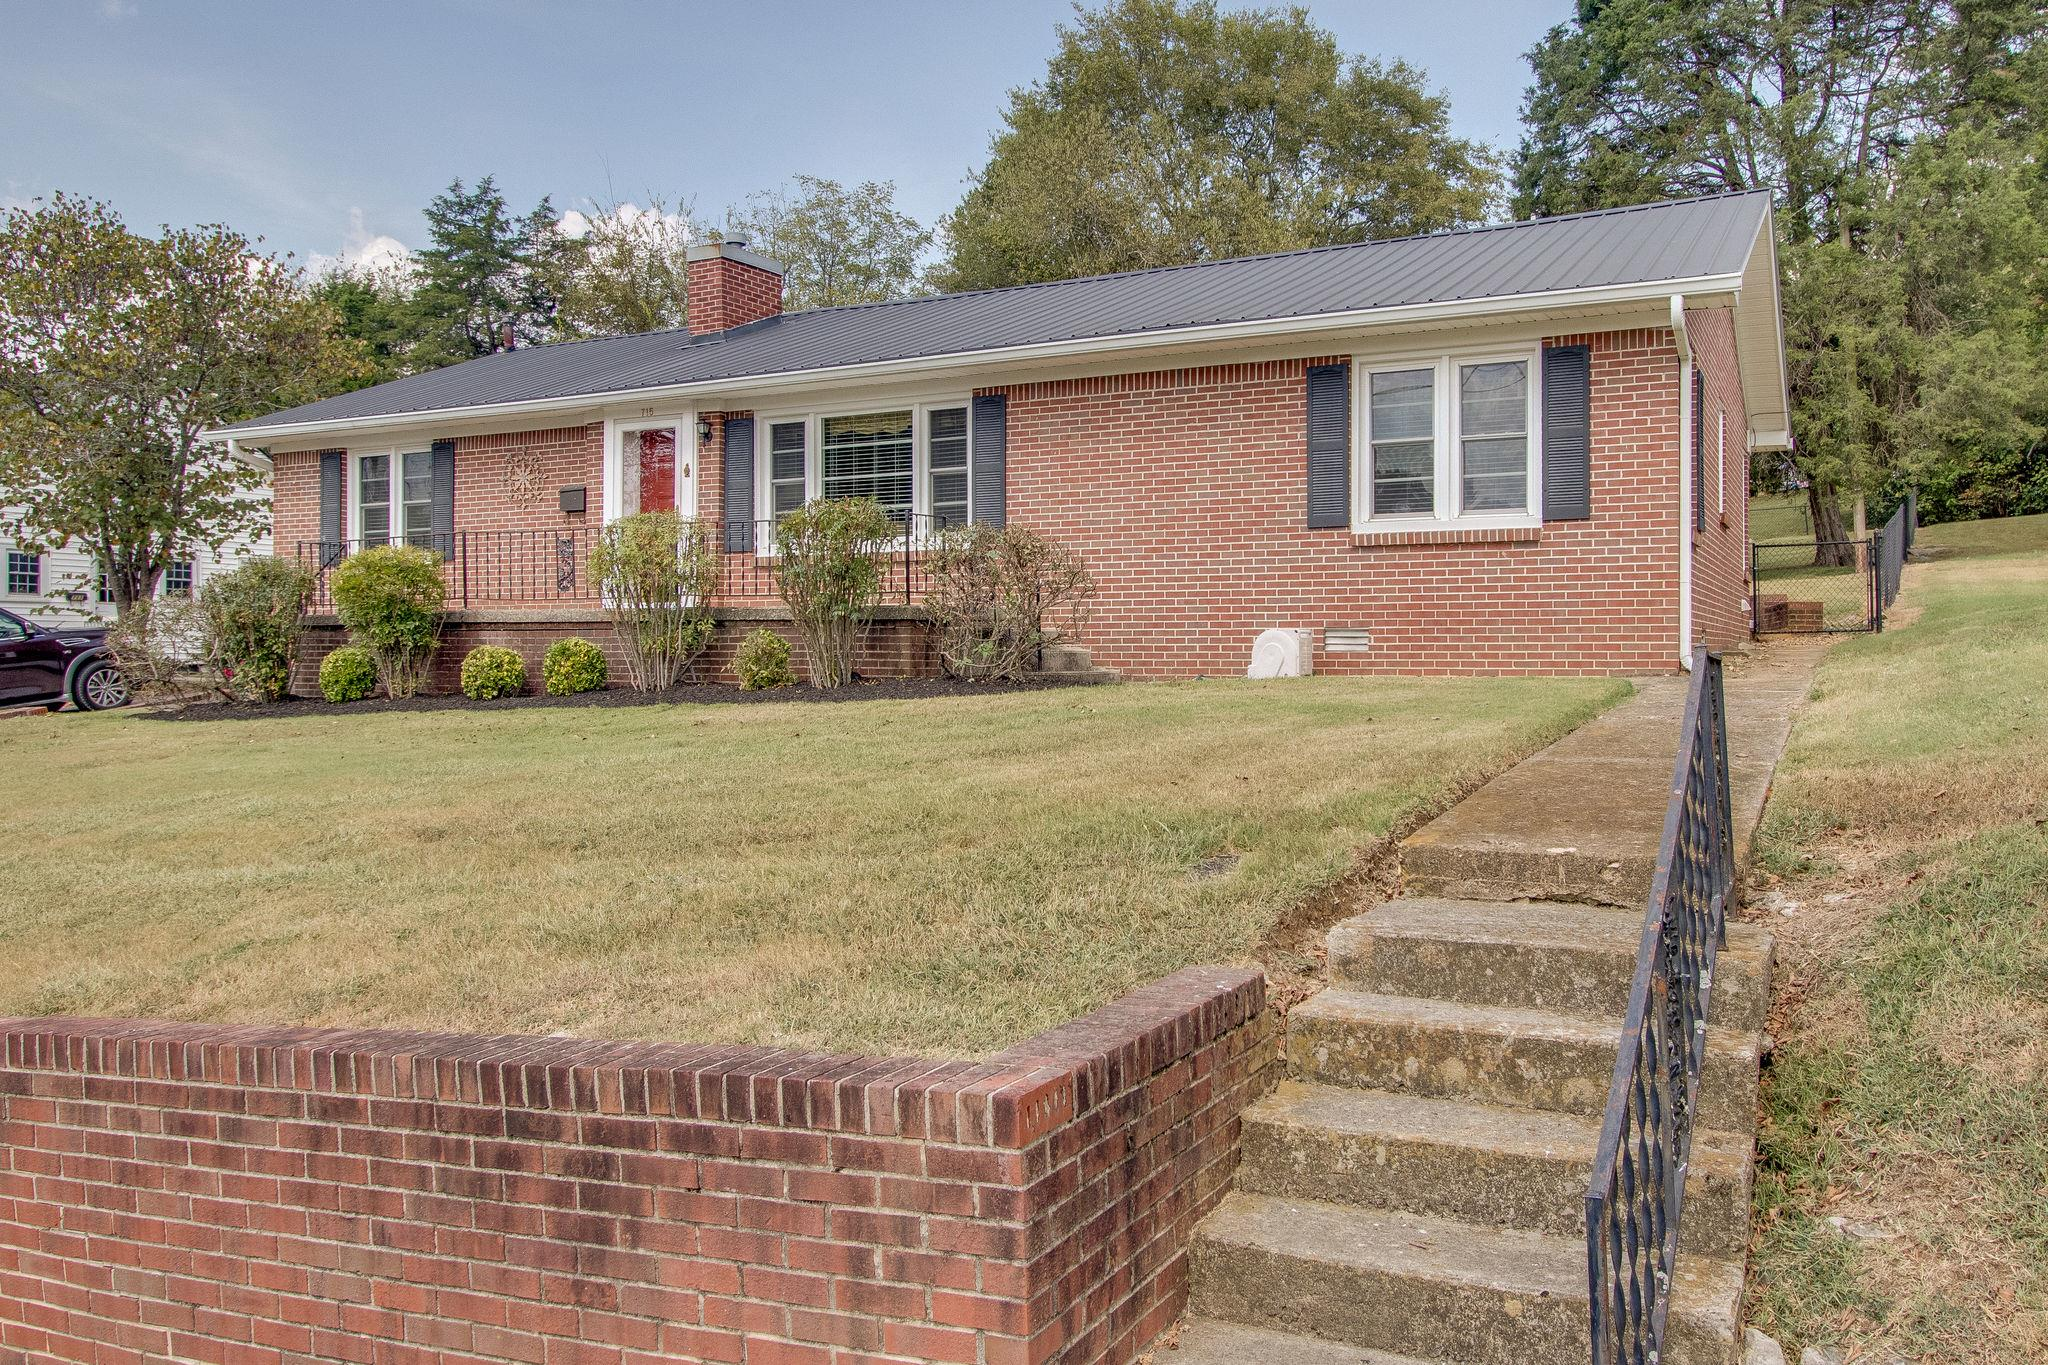 715 Jefferson Ave, E, Carthage, TN 37030 - Carthage, TN real estate listing